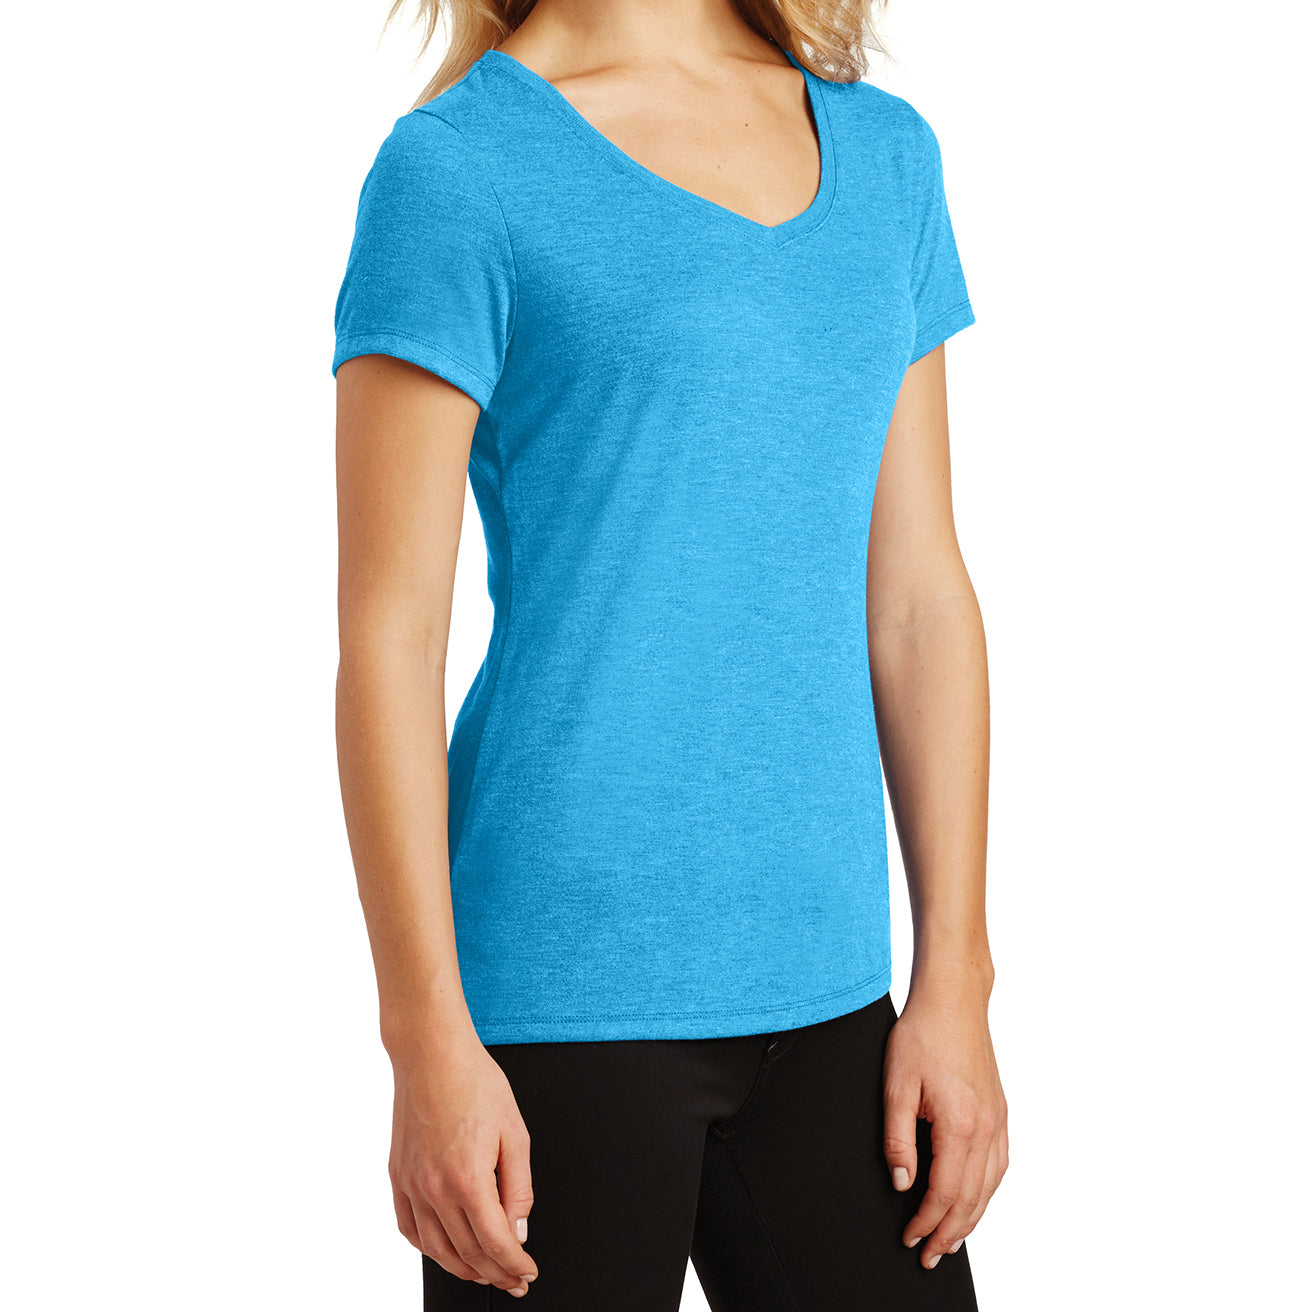 Women's Perfect Tri V-Neck Tee - Turquoise Frost - Side